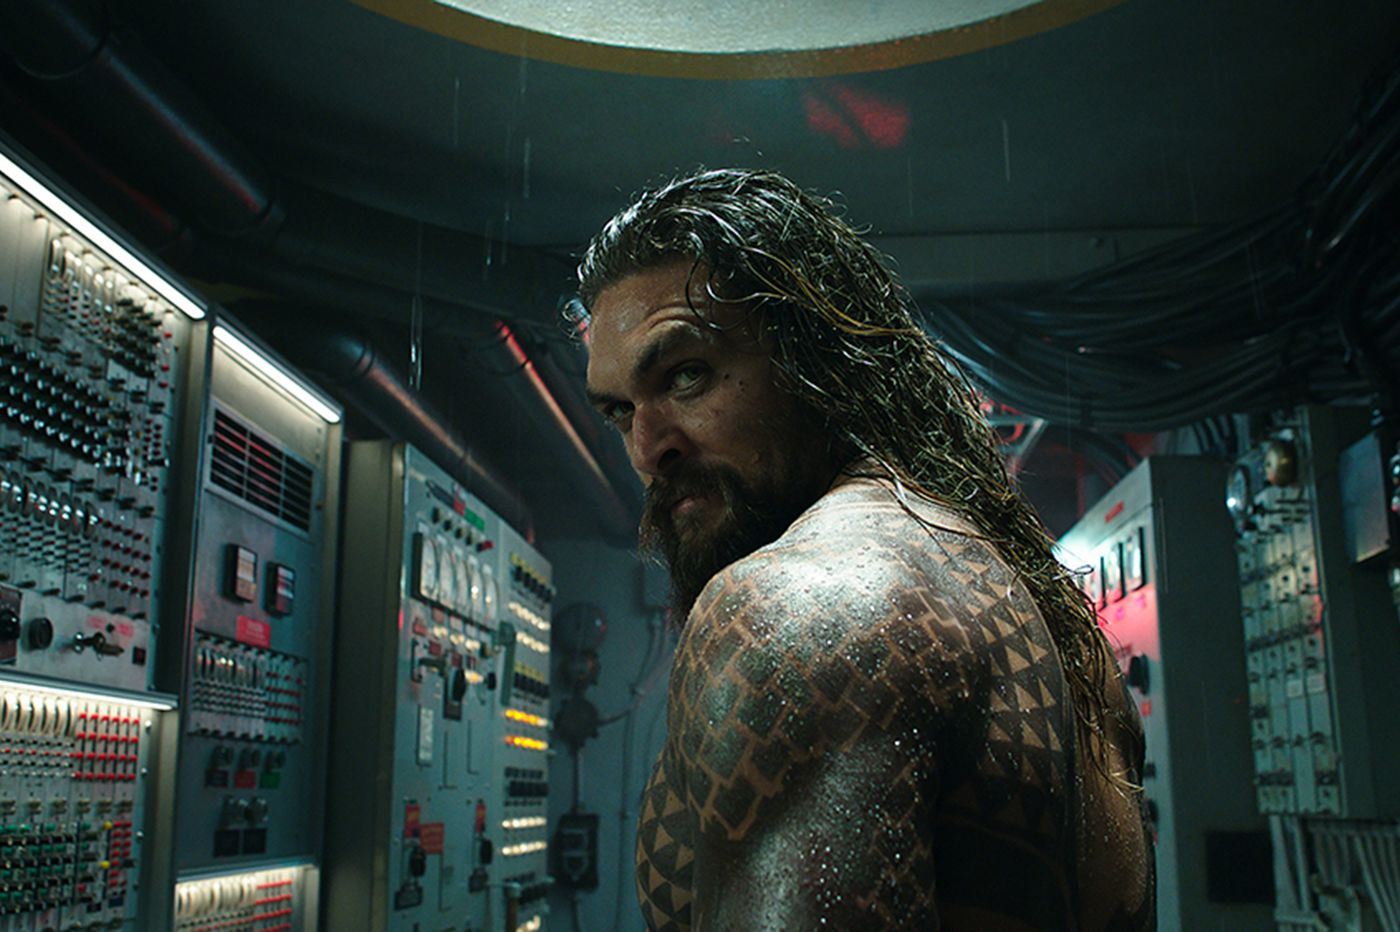 Jason Momoa, Aquaman and longtime Flyers fan, talks about a career that's going swimmingly.